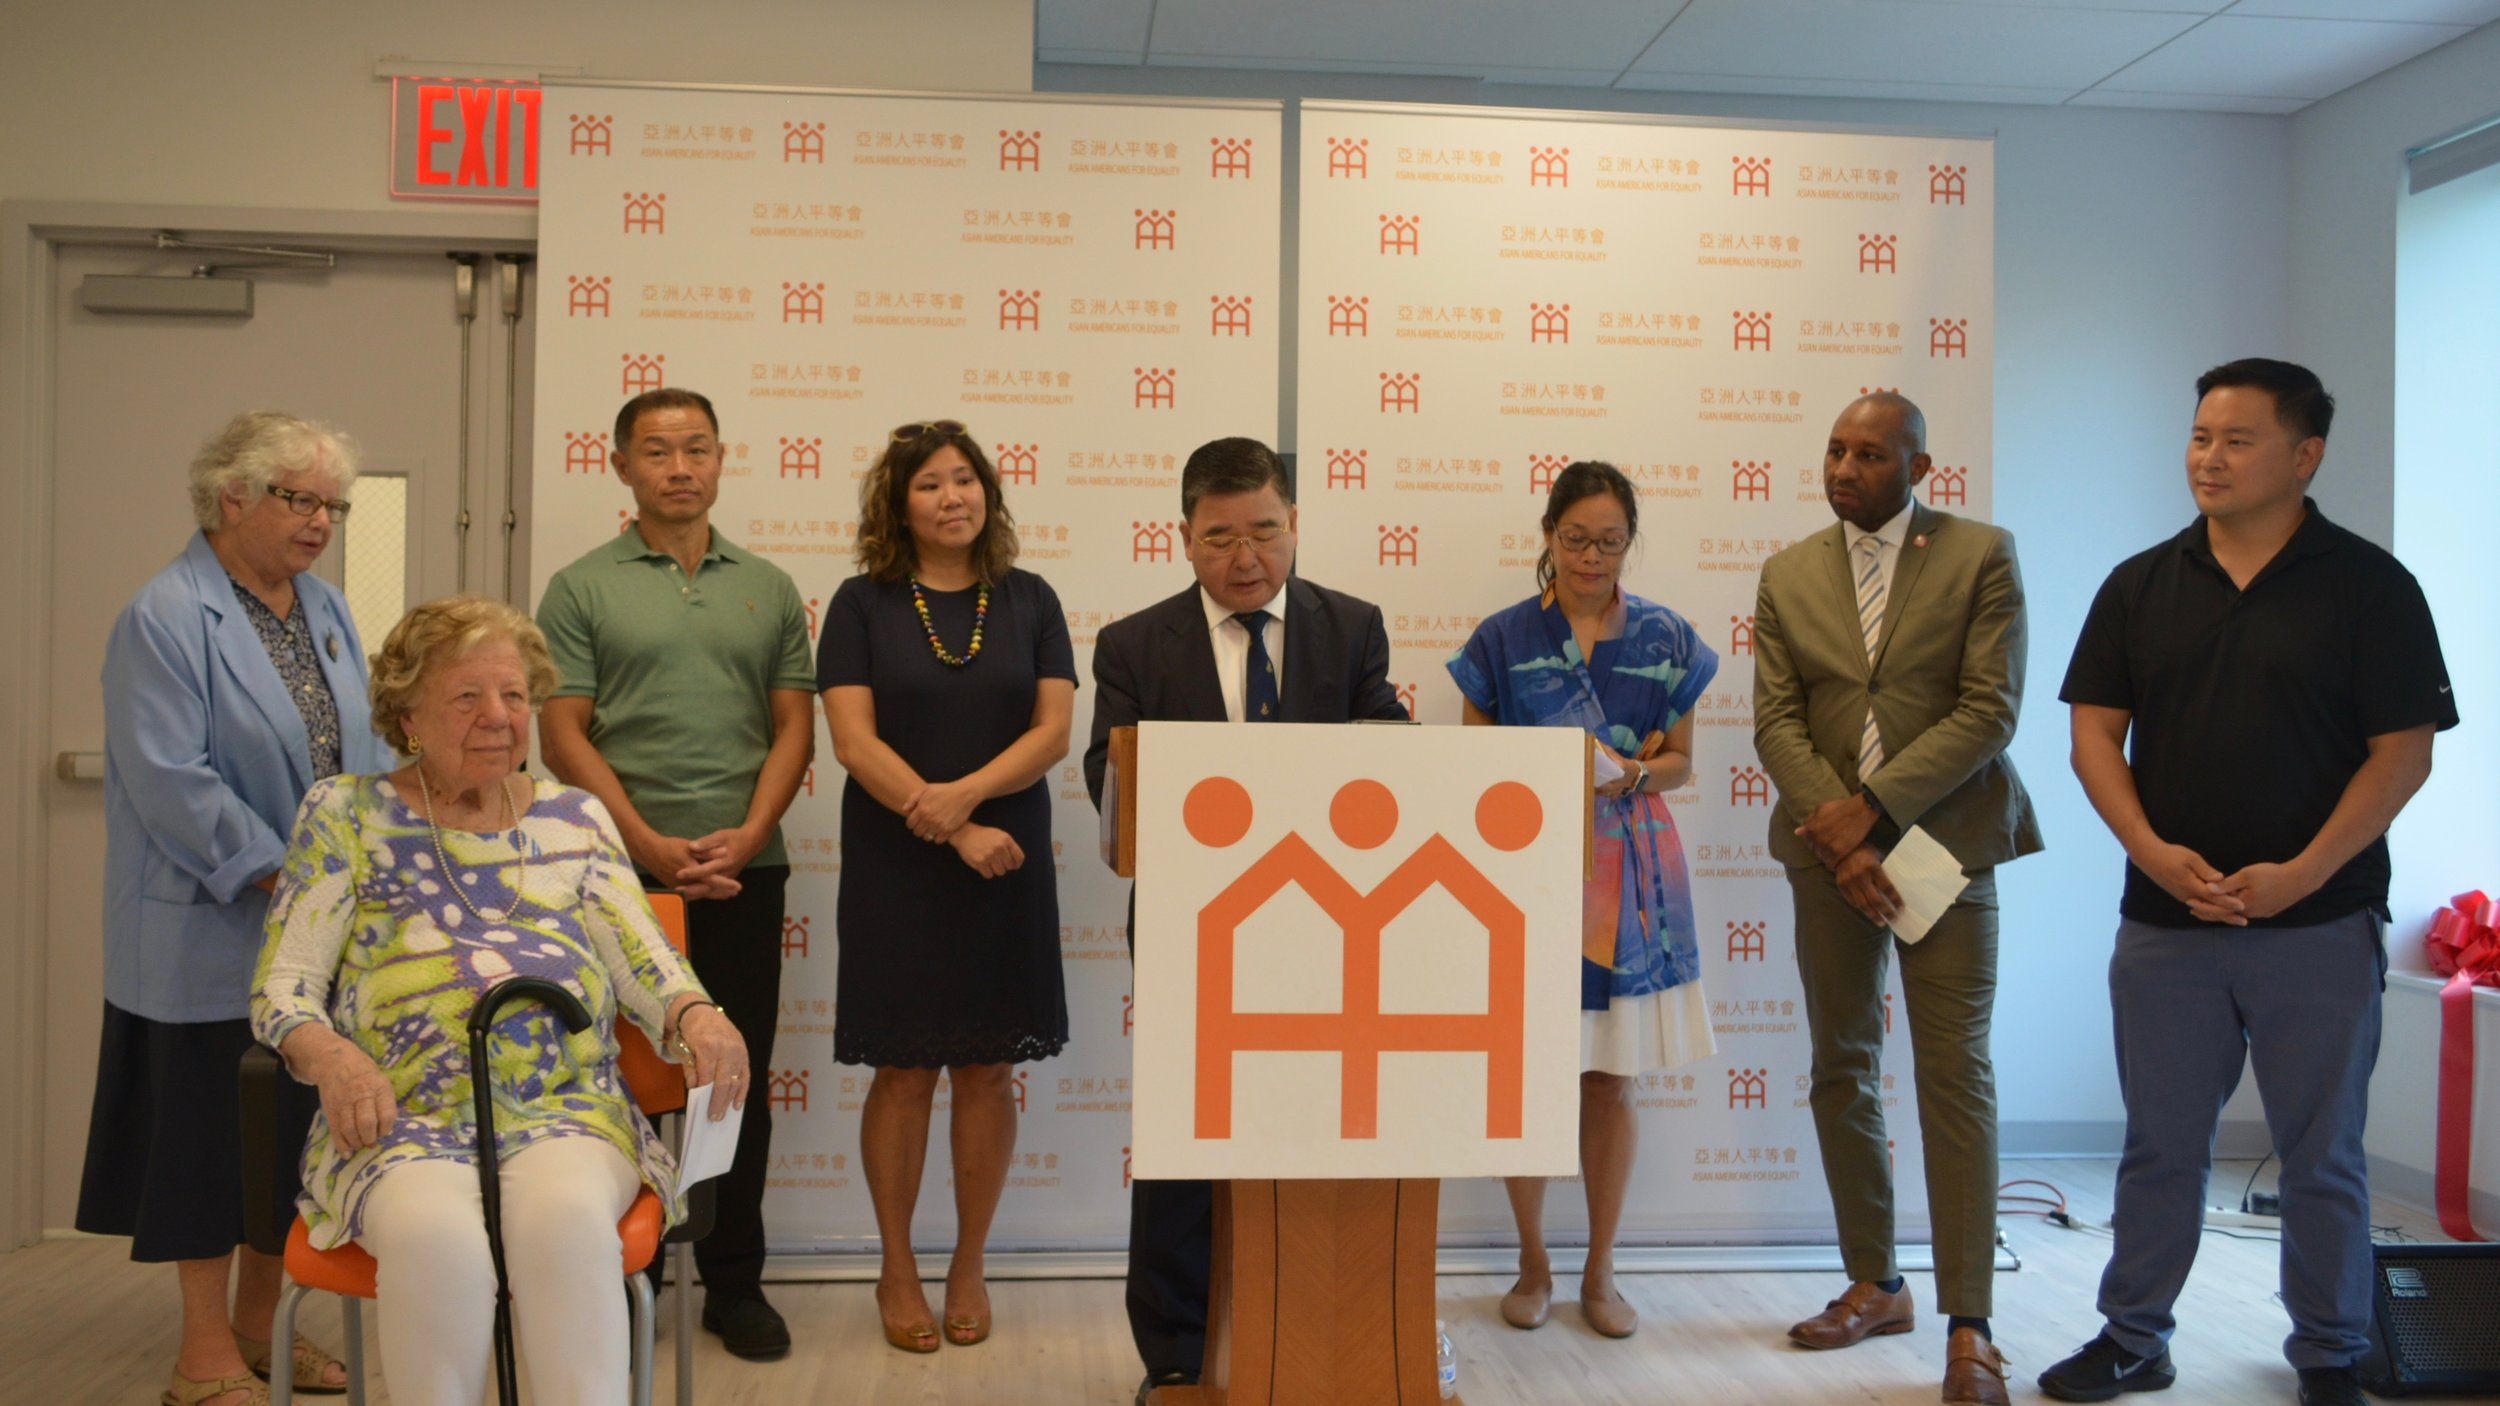 Councilmember Peter Koo speaks at a ribbon cutting for AAFE's new Flushing headquarters. Photo courtesy of AAFE.